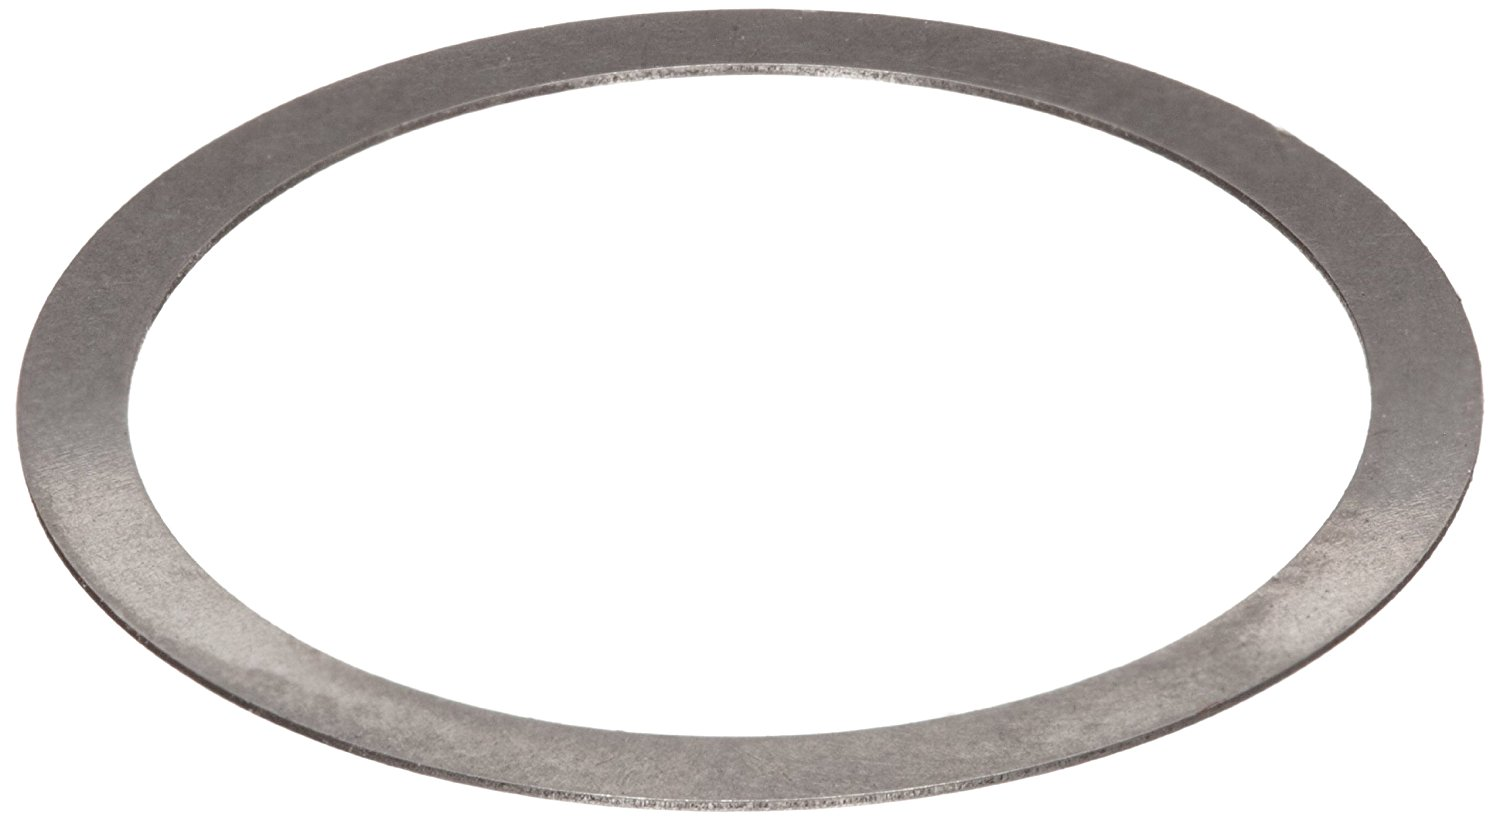 """Shim Flat Washer, 18-8 Stainless Steel, 3/16"""" x 1/2"""" Bolt Size, 0.378-0.383"""" ID, .493-.498"""" OD, 0.020"""" Thick (Pack of 25)"""